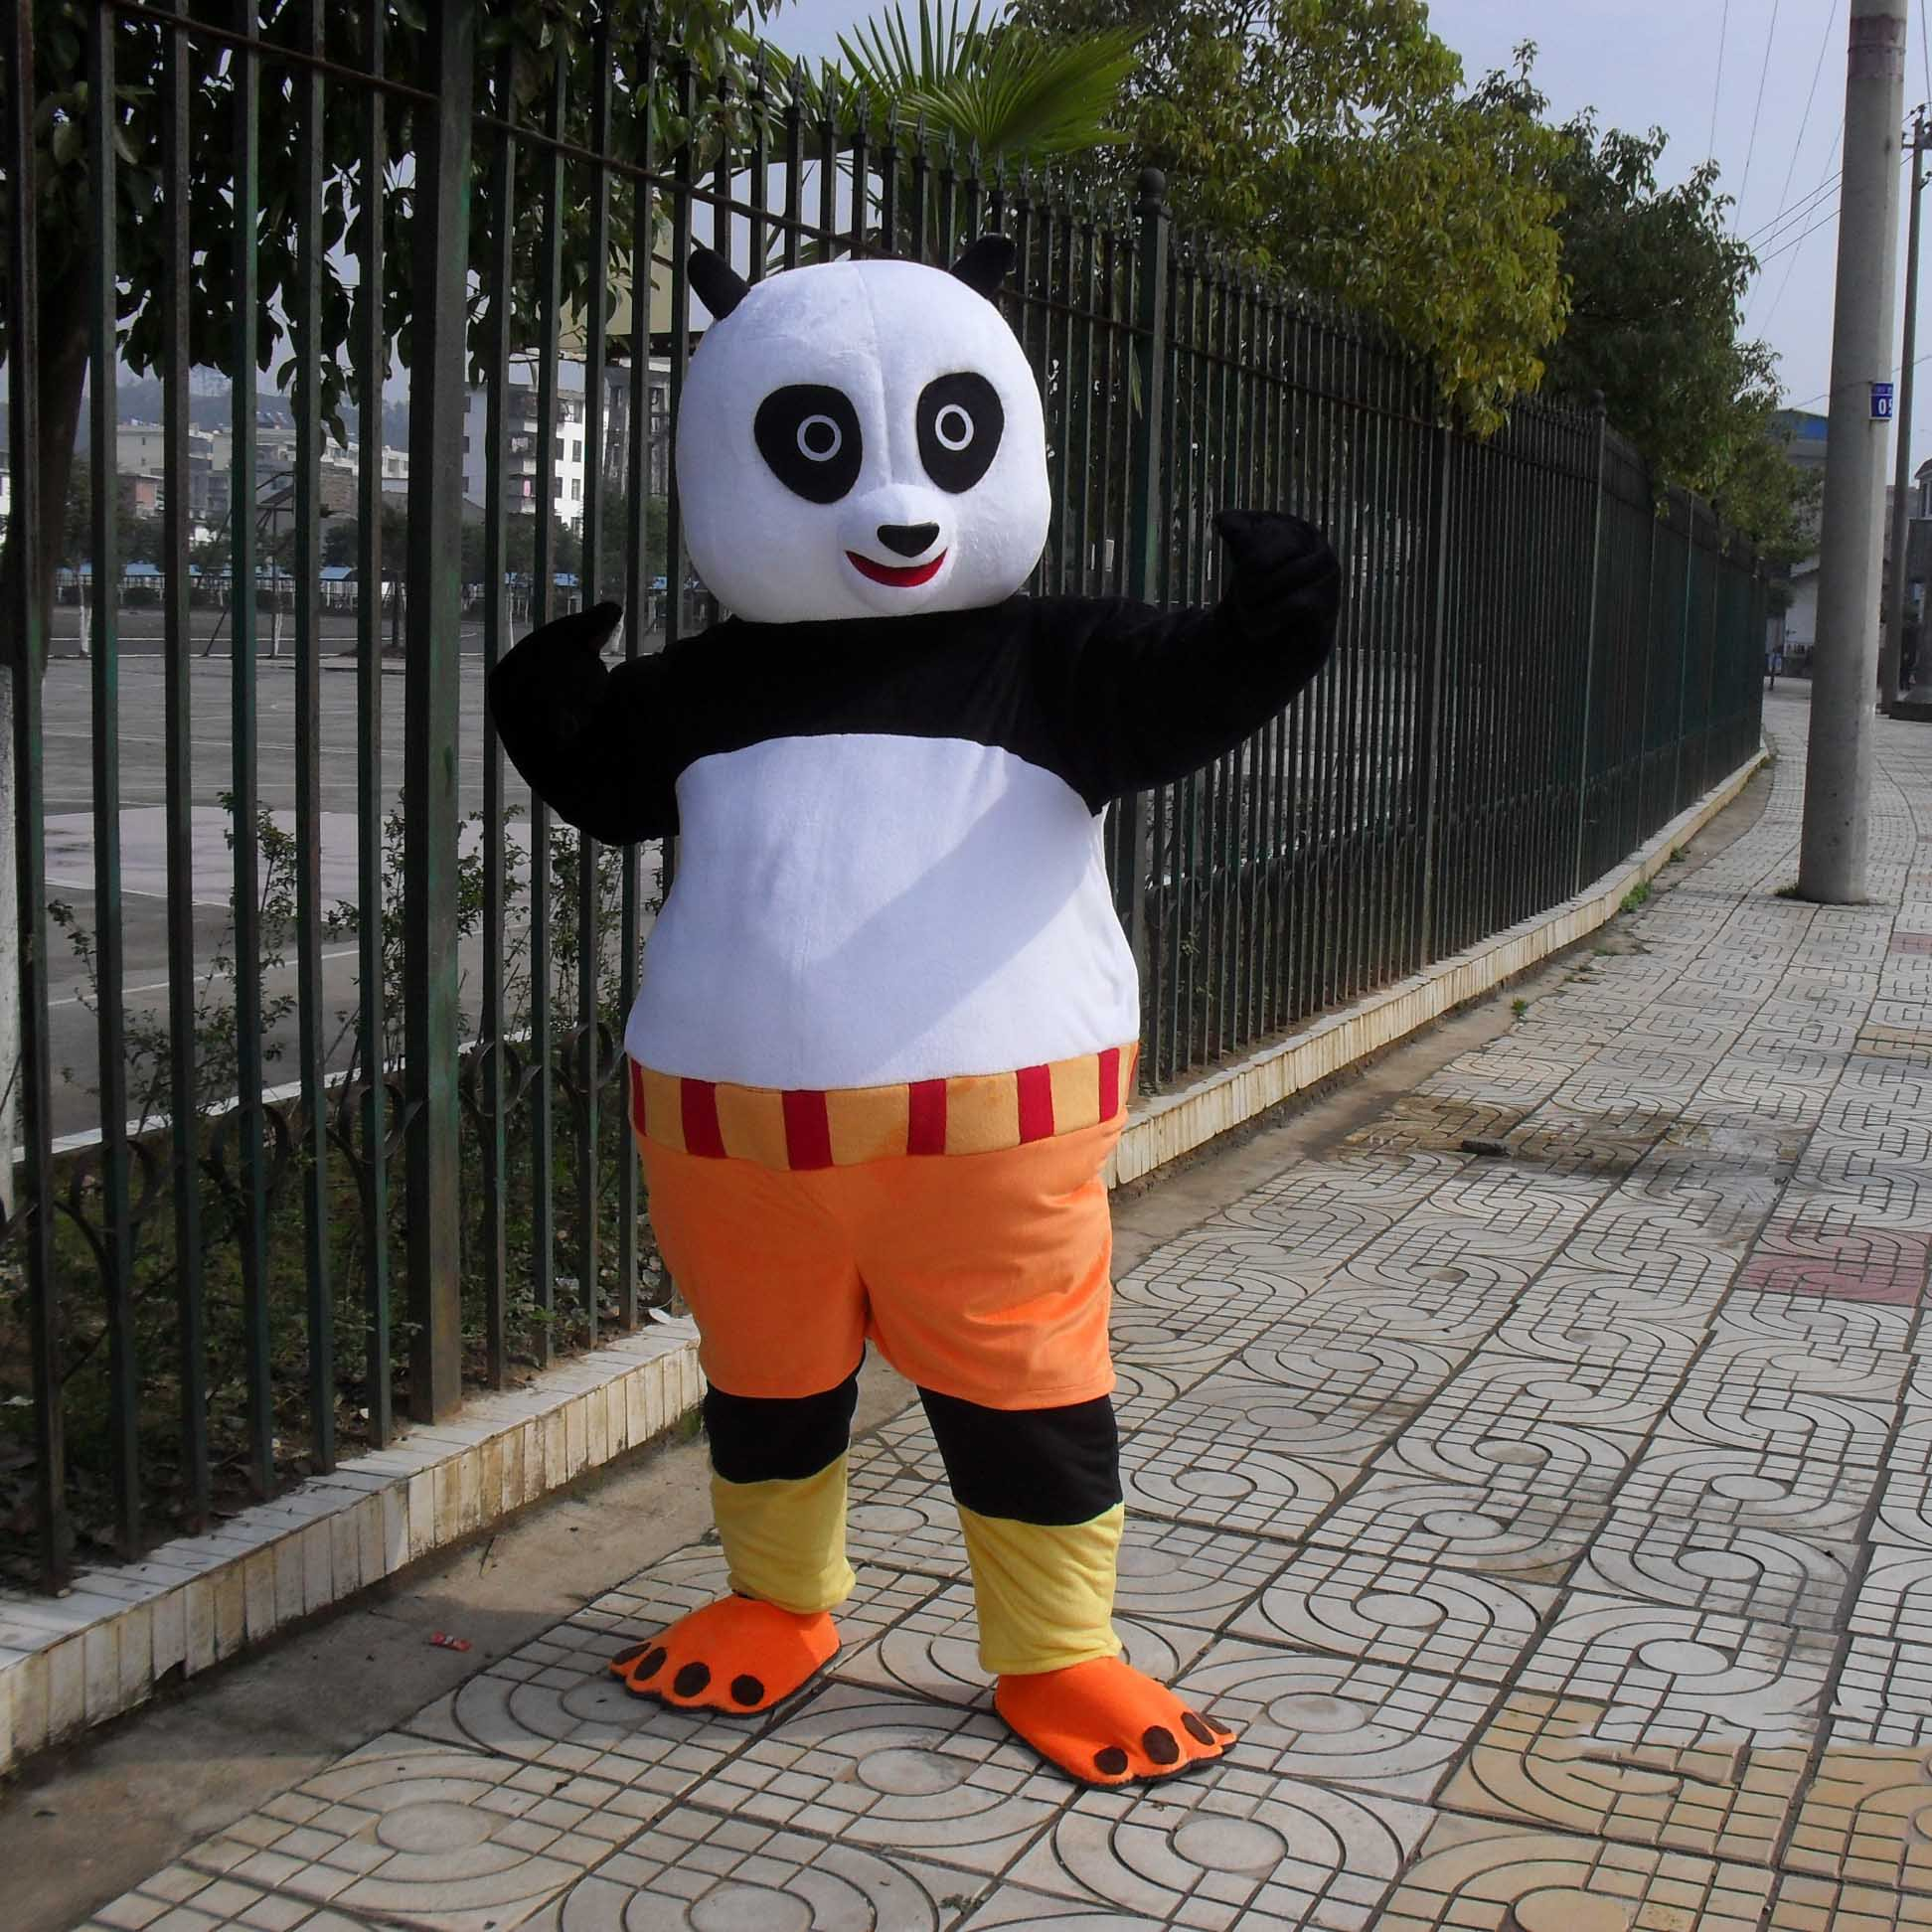 Television Cartoon Characters Walking Doll Cartoon Doll Clothing Doll Kung Fu Panda Cartoon Costumes Mascot Costume